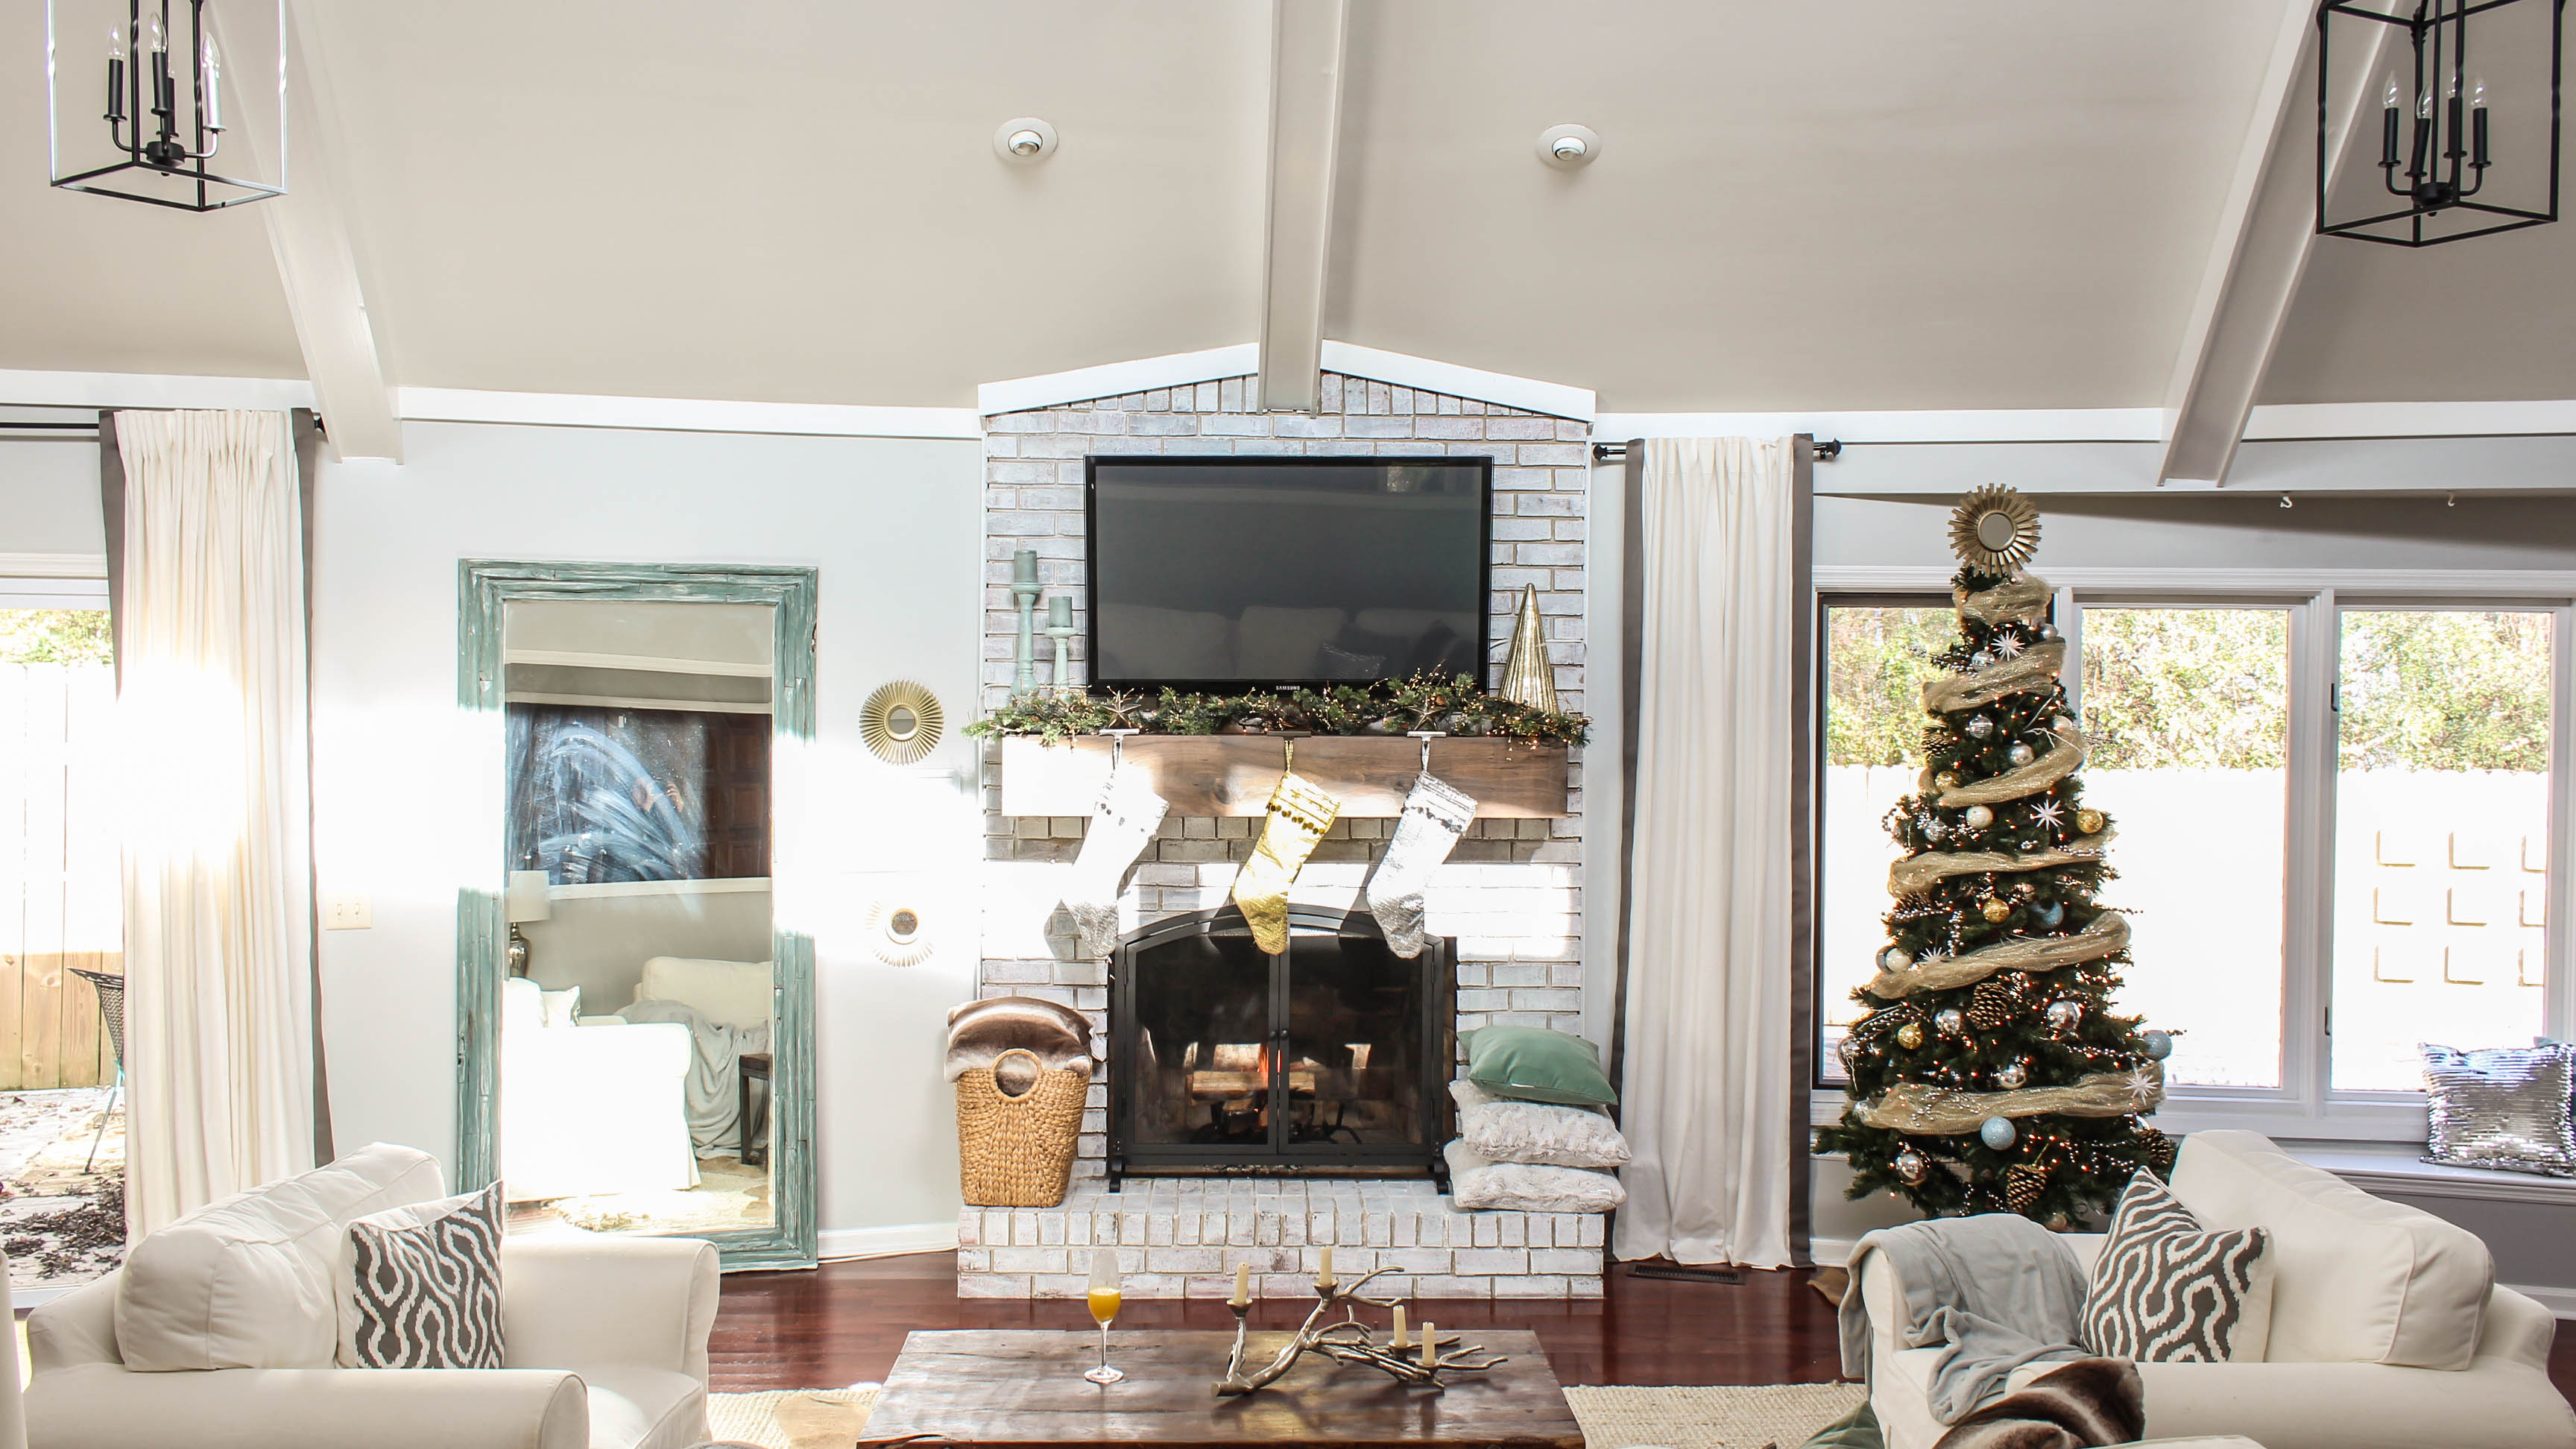 How to decorate my living room for christmas - Neutral Modern Christmas When Decorating My